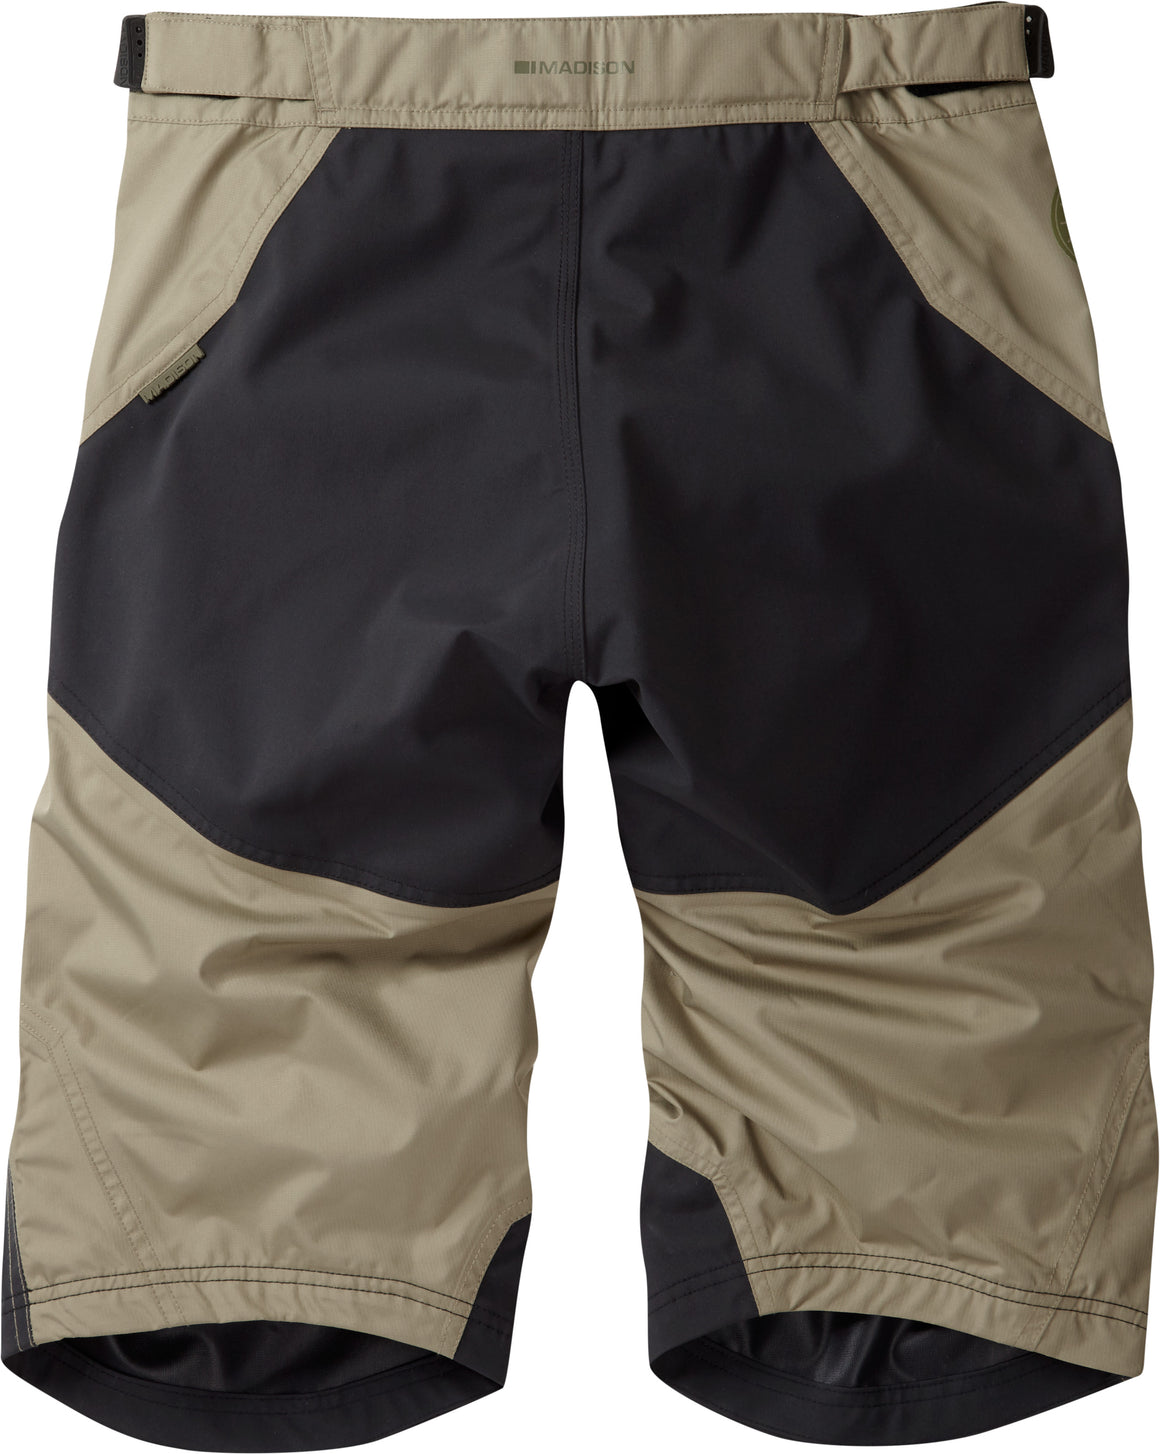 Madison DTE Men's Waterproof Shorts, Olive Green